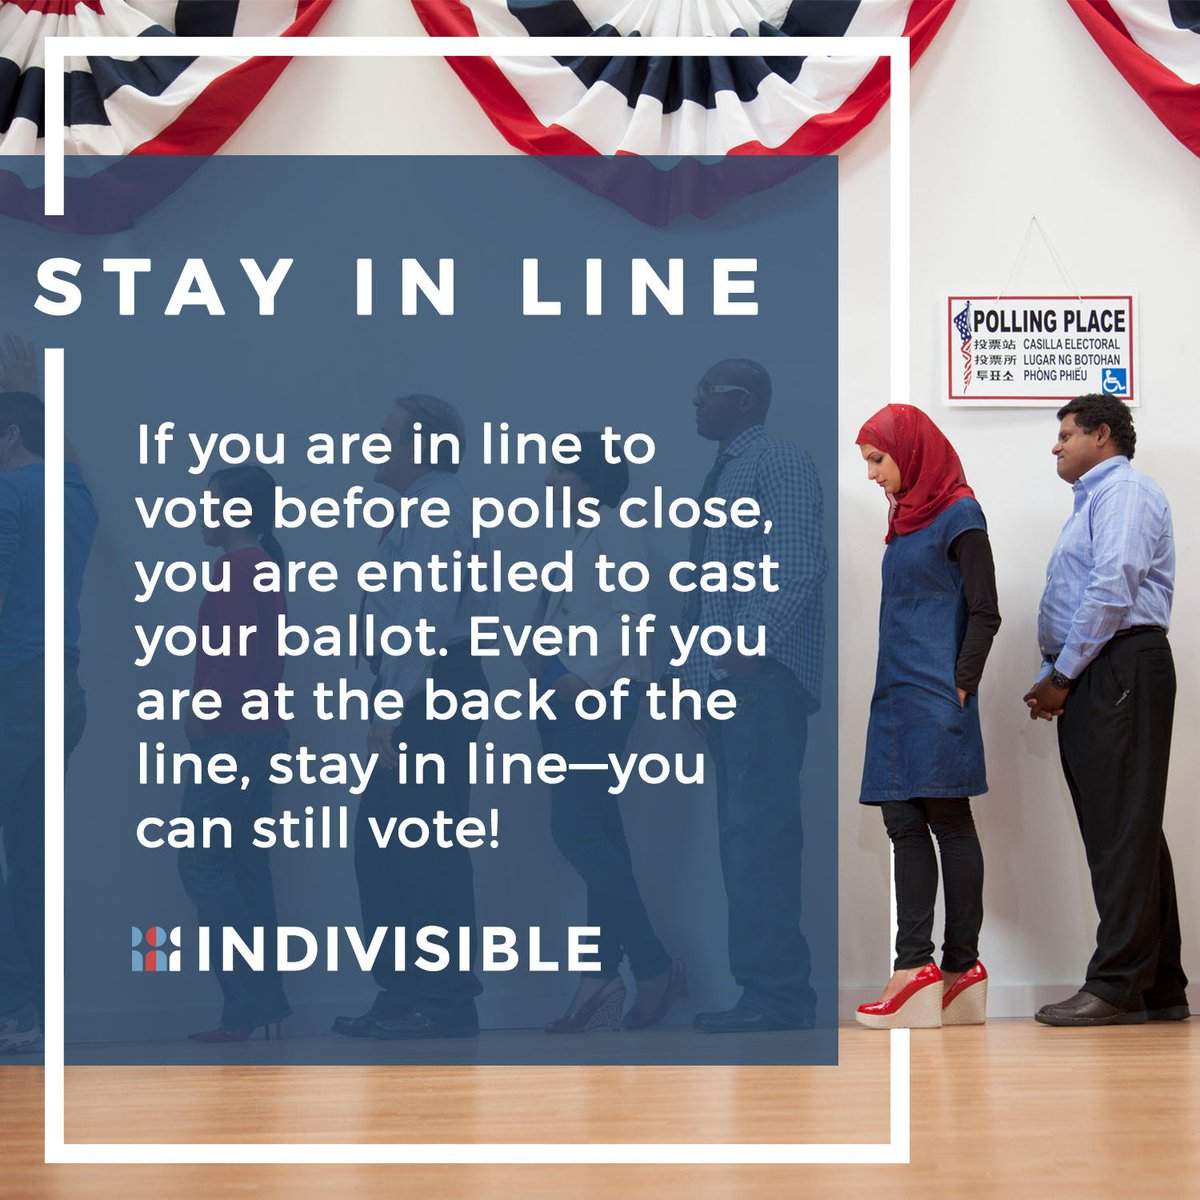 If you're in line when polls close in your state, you can still vote! STAY IN LINE!